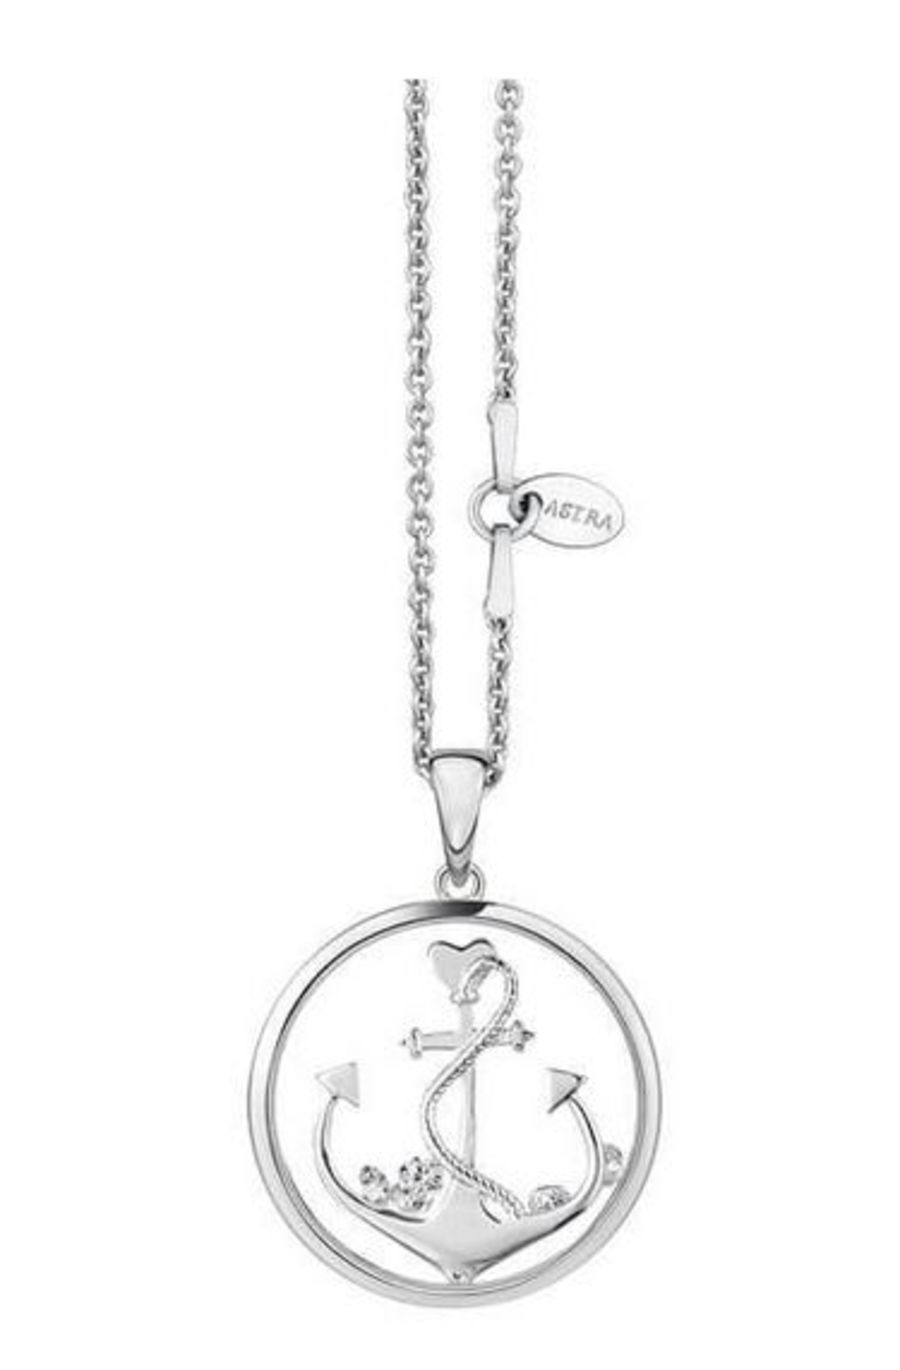 Anchor The Soul Silver Pendant & Chain by Astra Jewellery